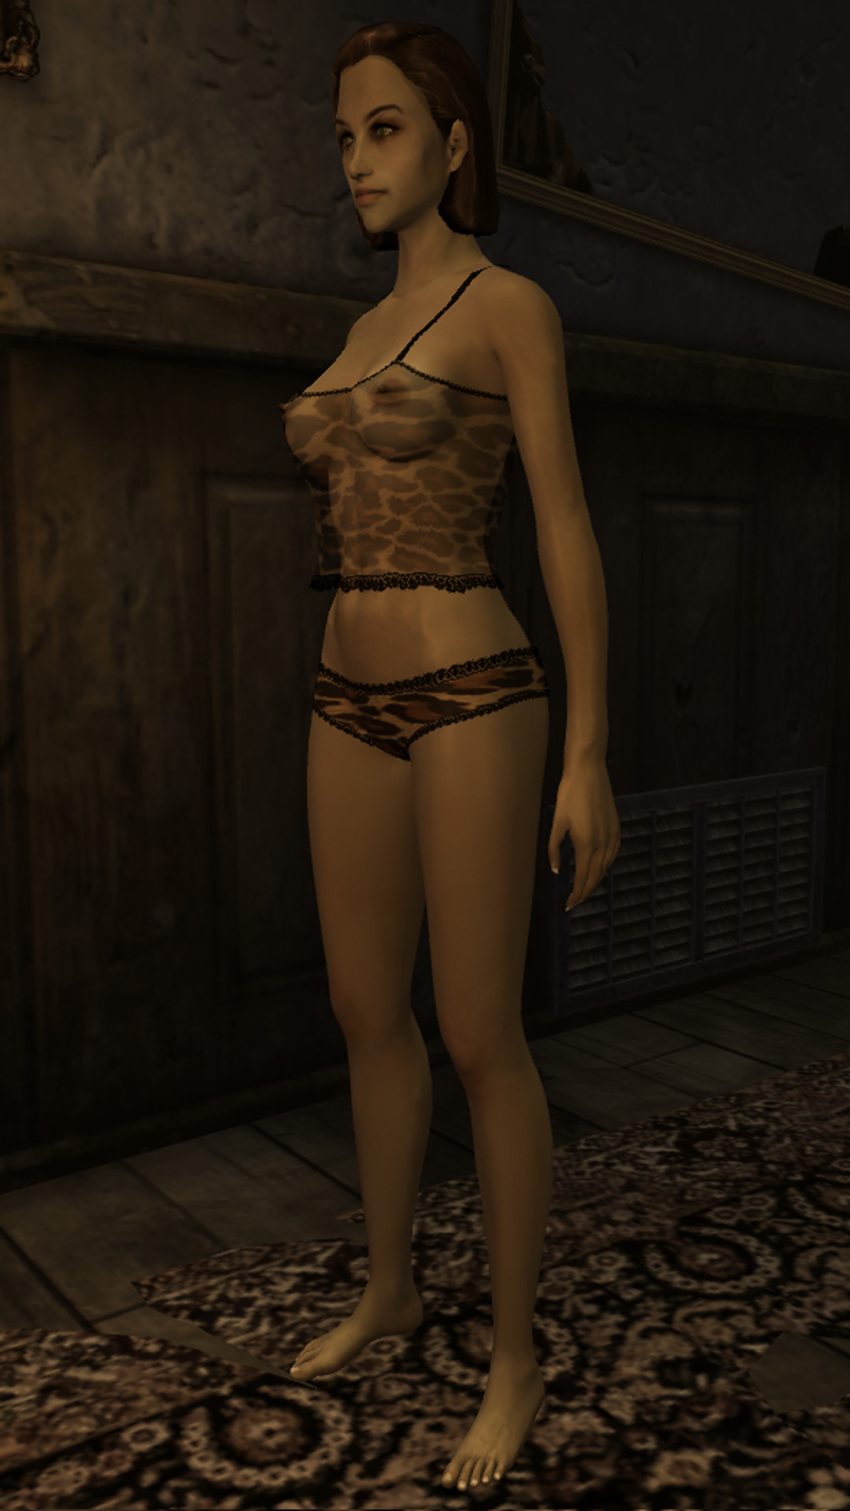 fallout new suit vegas chinese stealth Where can i find a falmer in skyrim